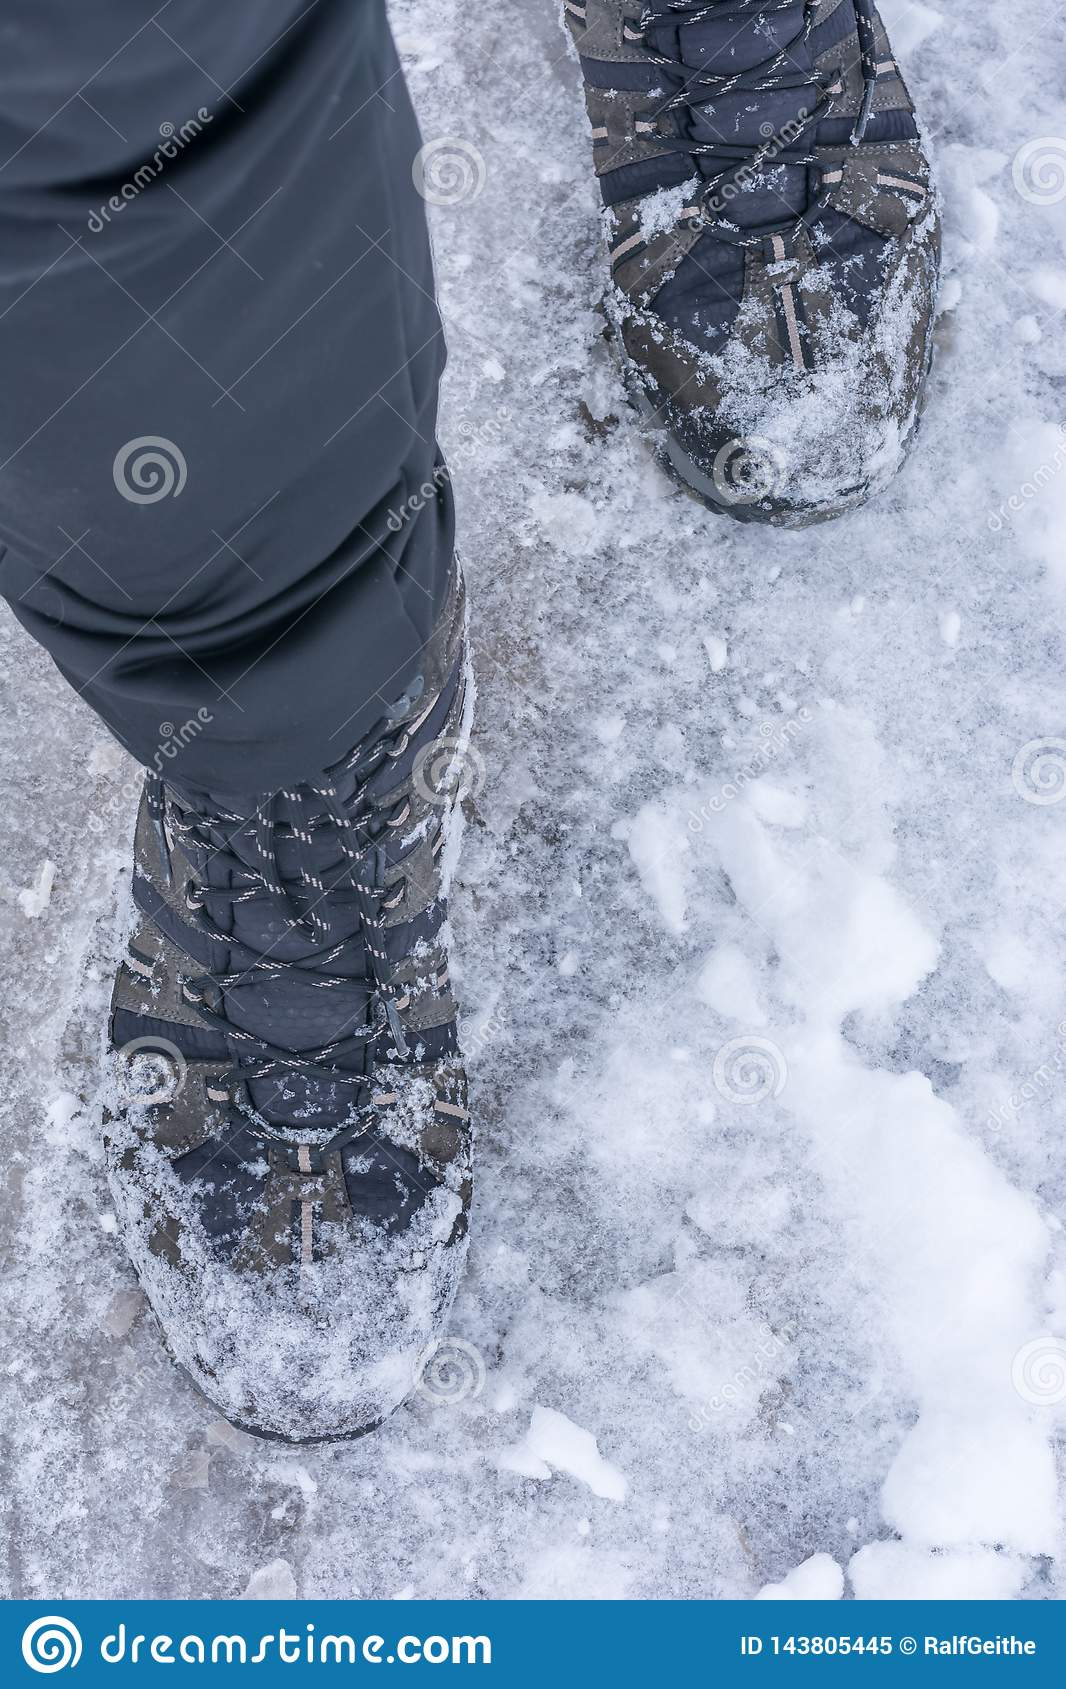 Man goes through the snow with warm winter boots